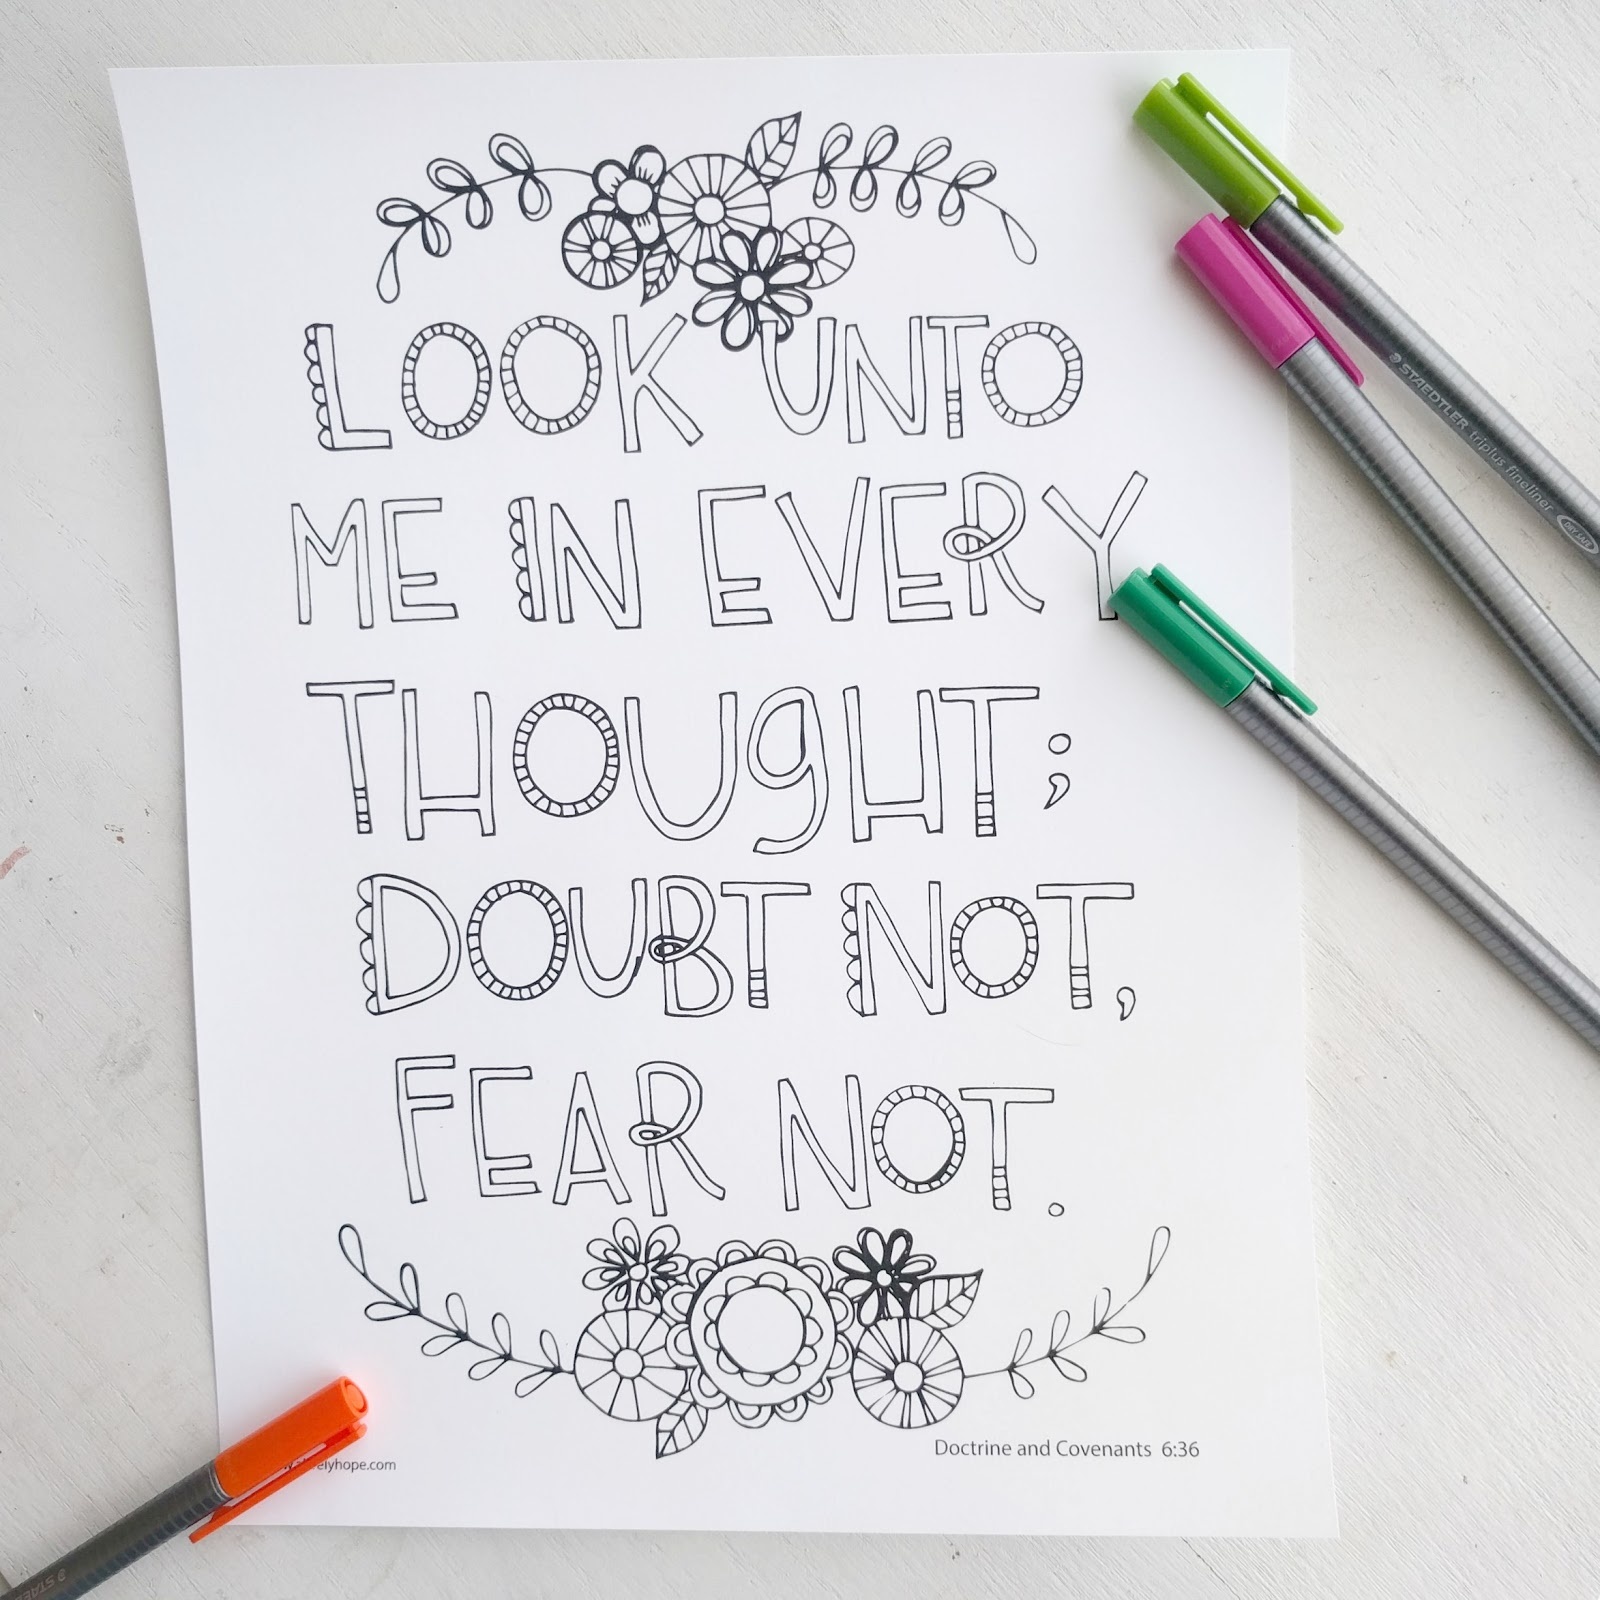 Look Unto Me In Every Thought Doubt Not Fear Free Coloring Page